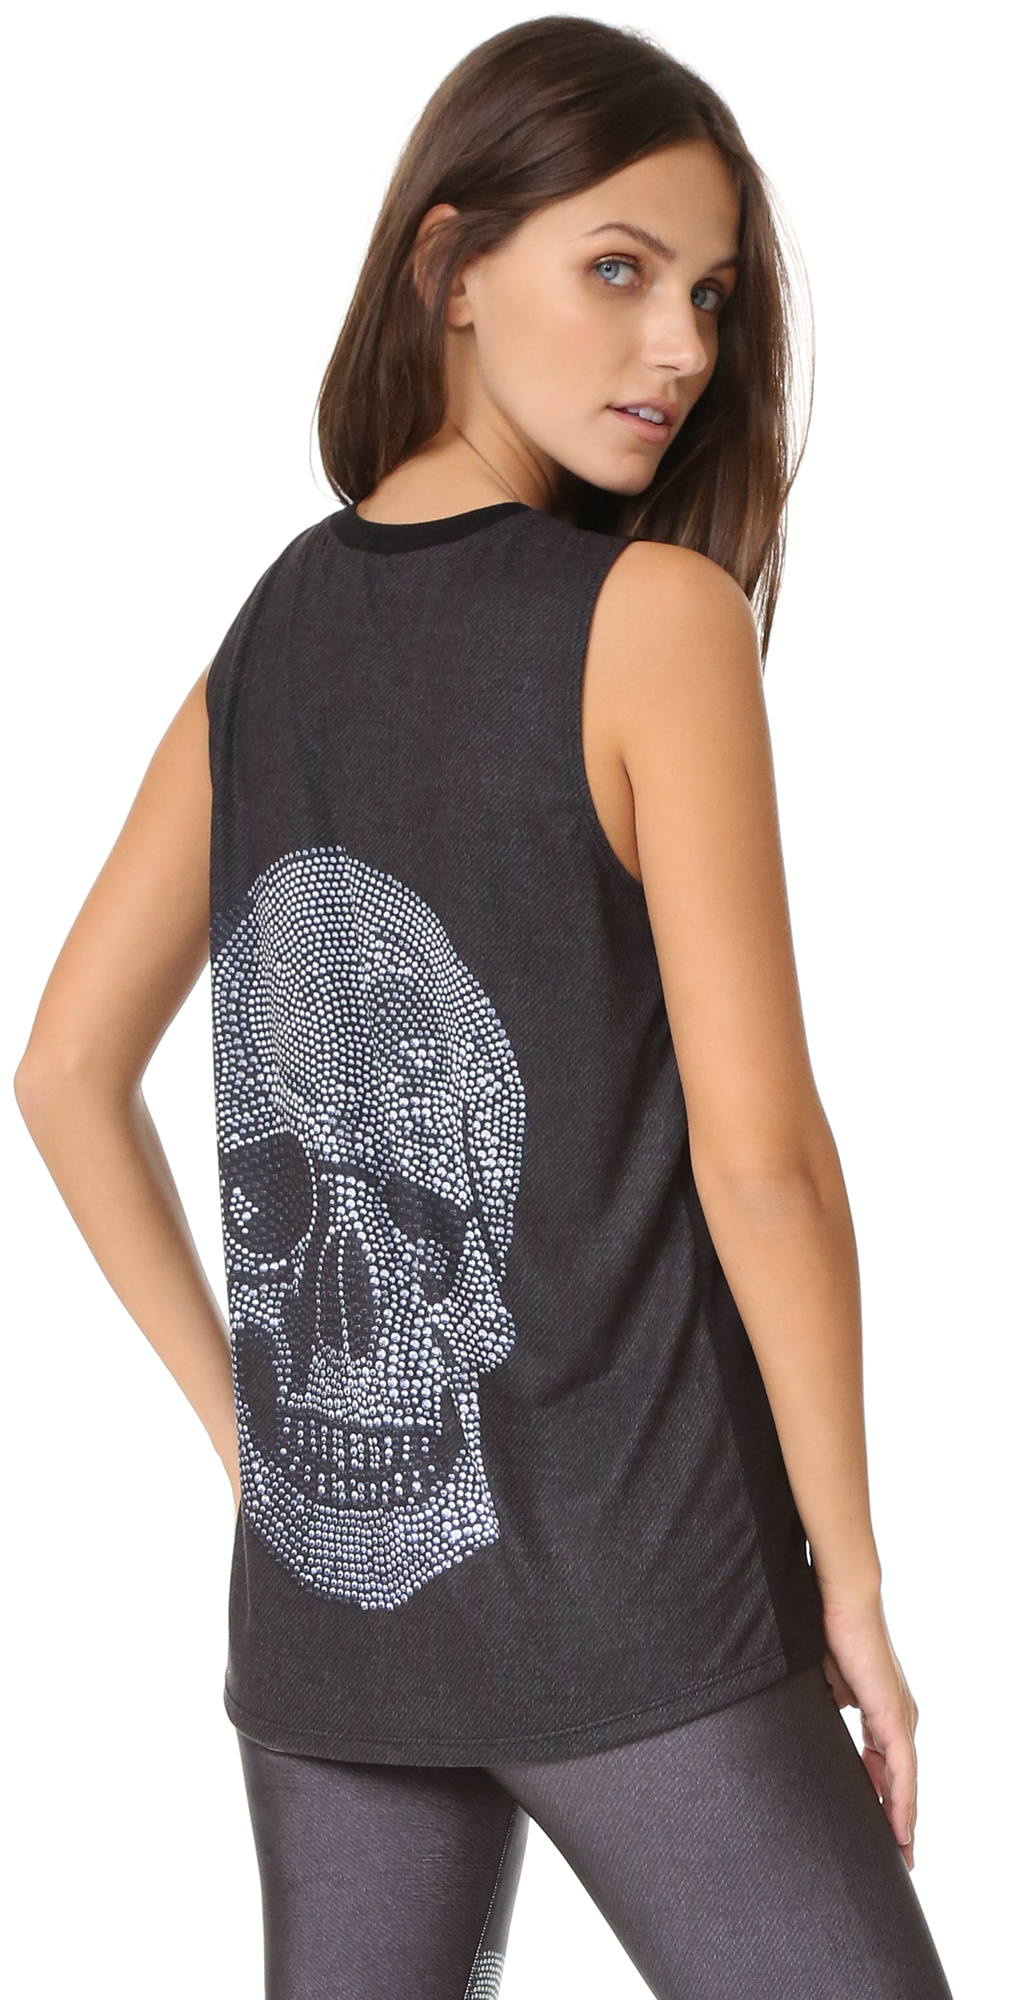 Crystal Skull Centered Muscle Tank Terez